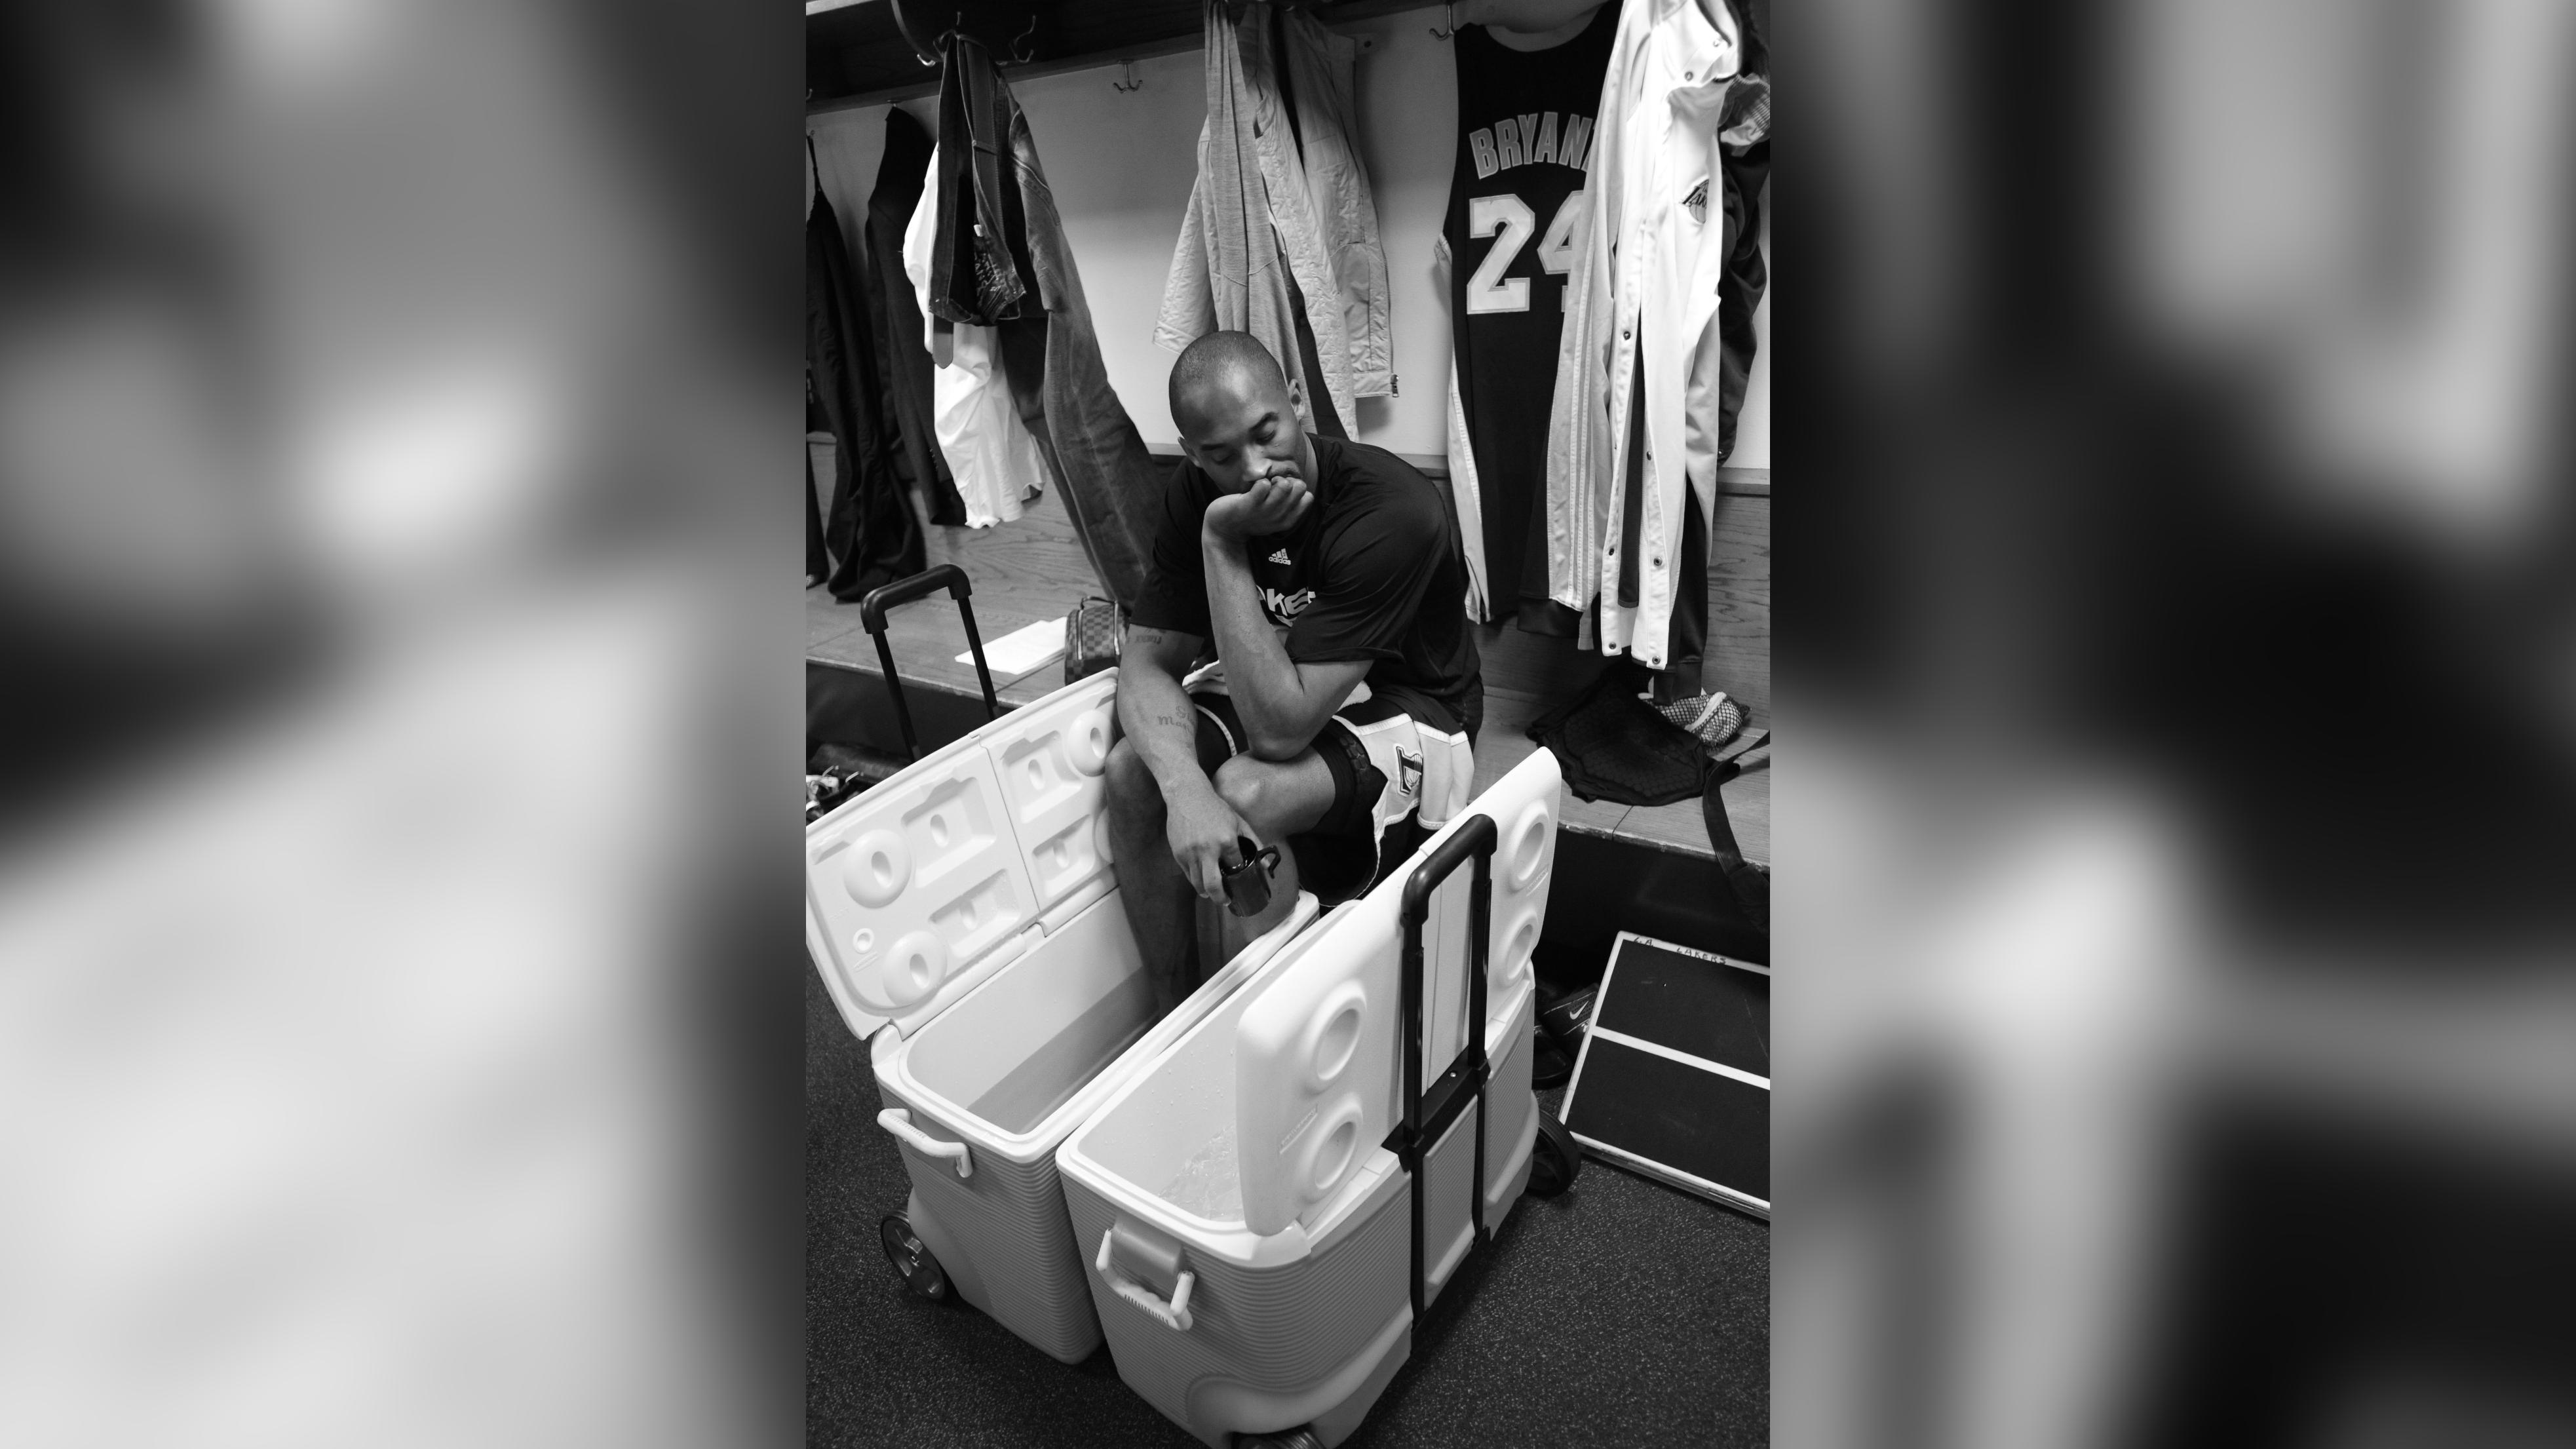 This photo of an injured Kobe Bryant willing himself to play sums up the Mamba mentality, photographer says